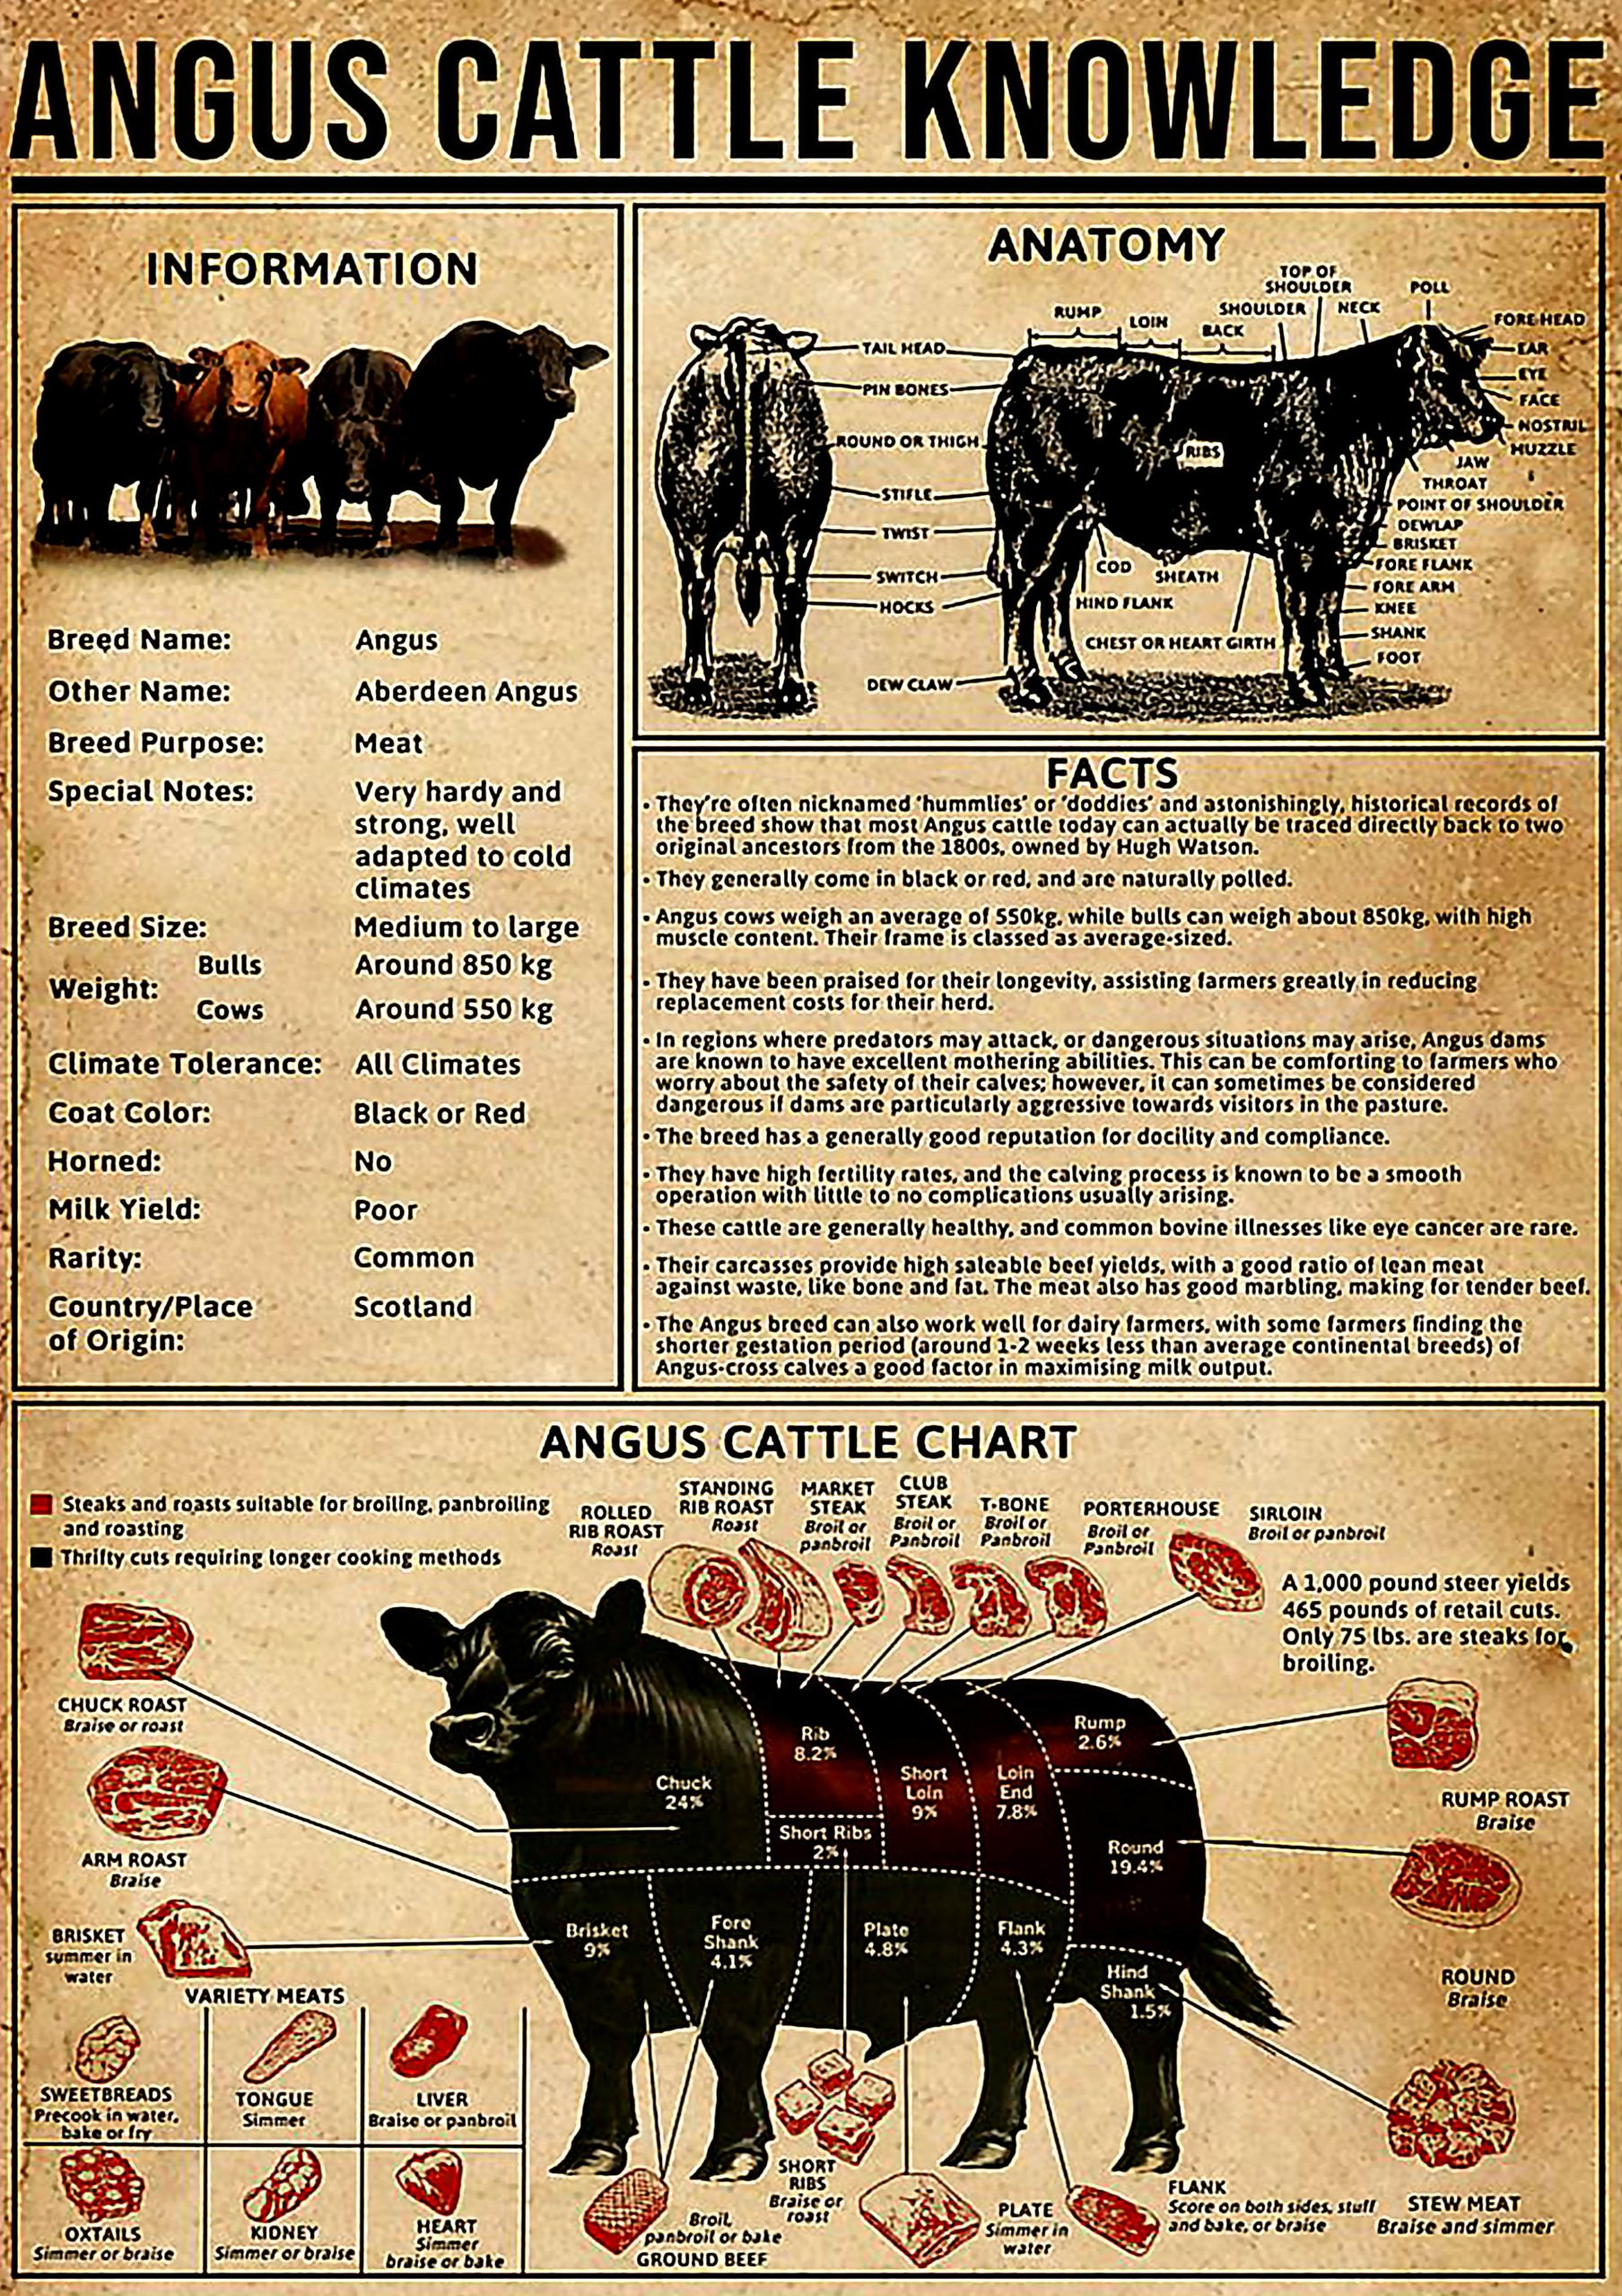 vintage angus cattle knowledge poster 1 - Copy